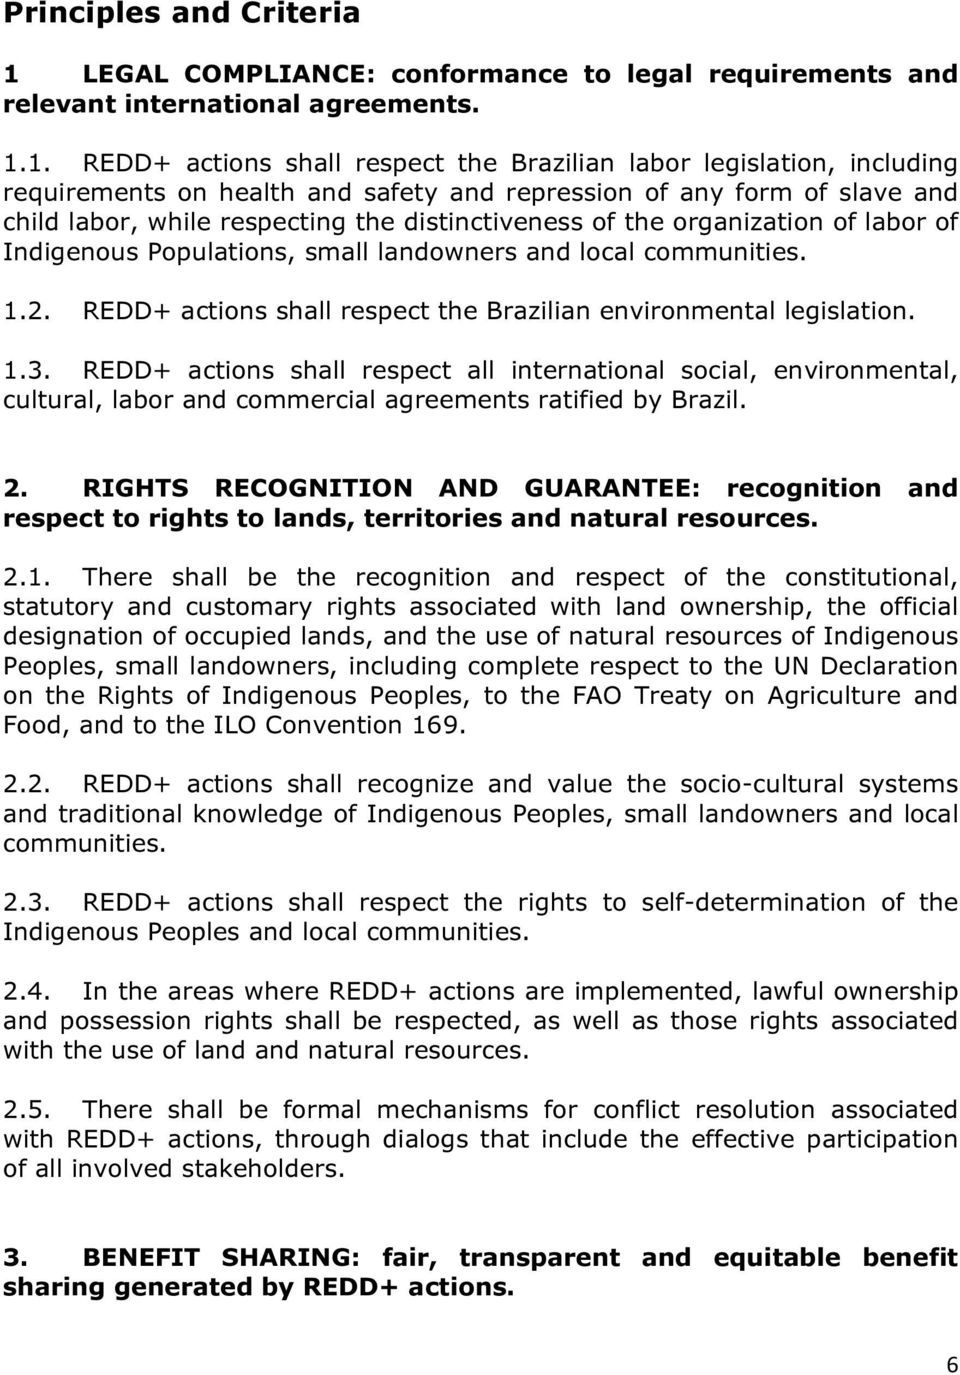 1. REDD+ actions shall respect the Brazilian labor legislation, including requirements on health and safety and repression of any form of slave and child labor, while respecting the distinctiveness